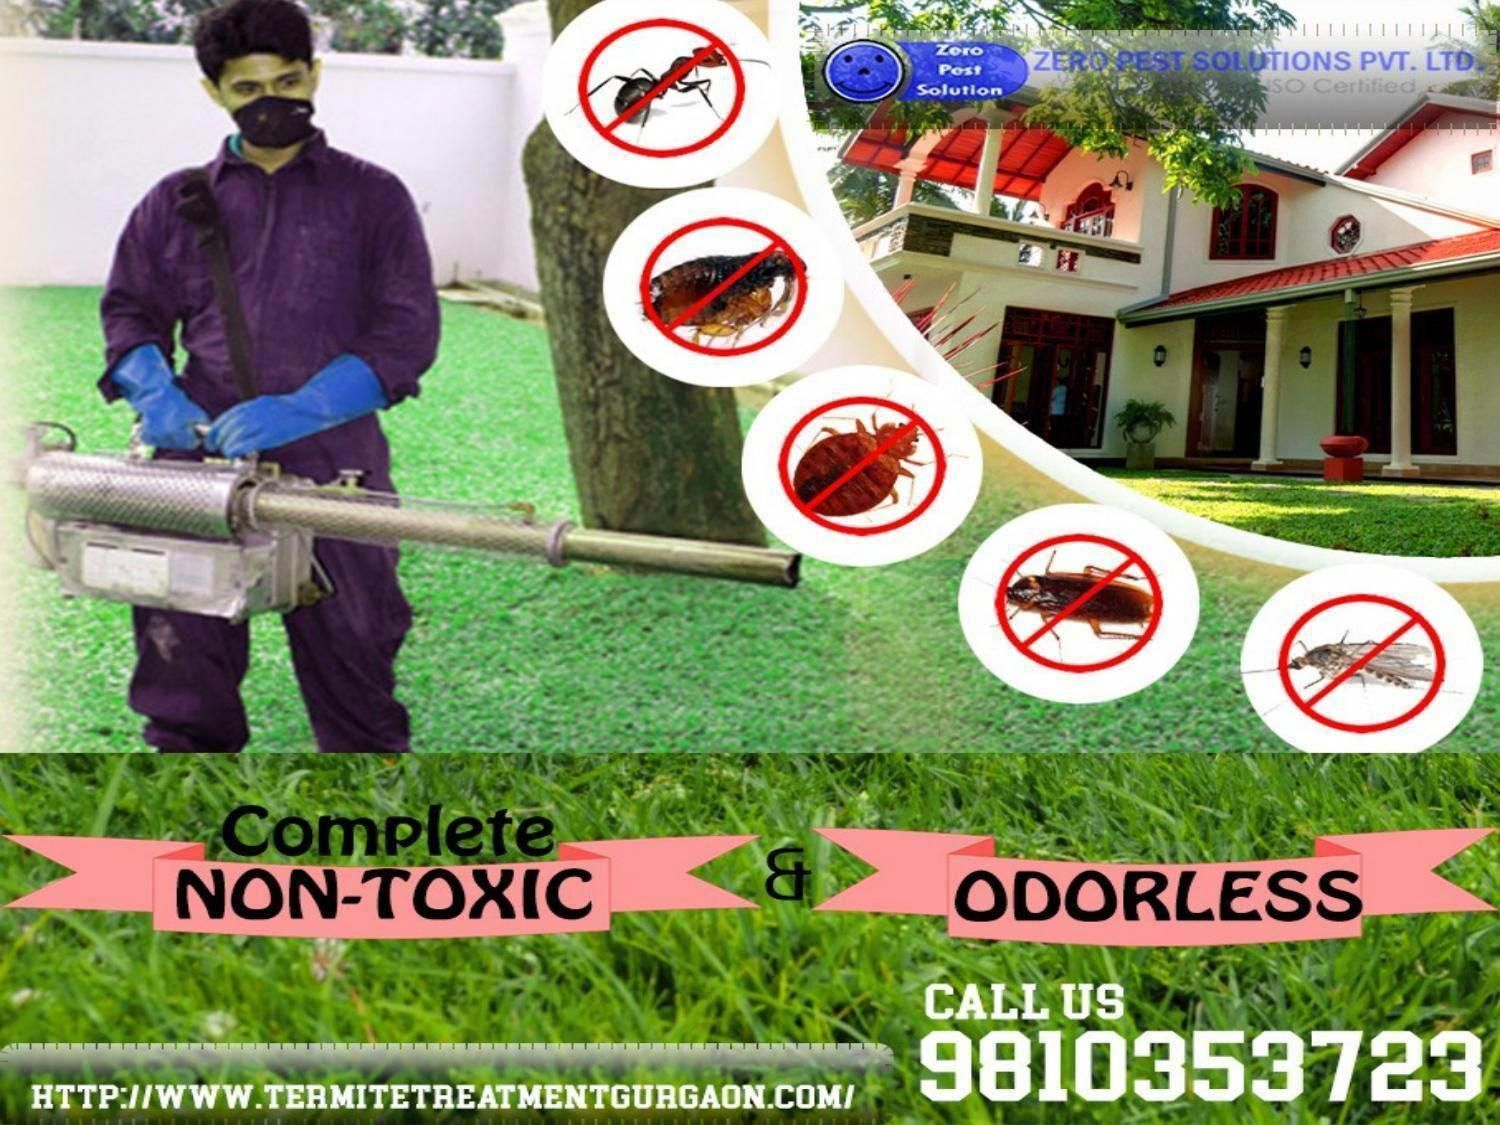 The utmost odorless and nontoxic termite pest control